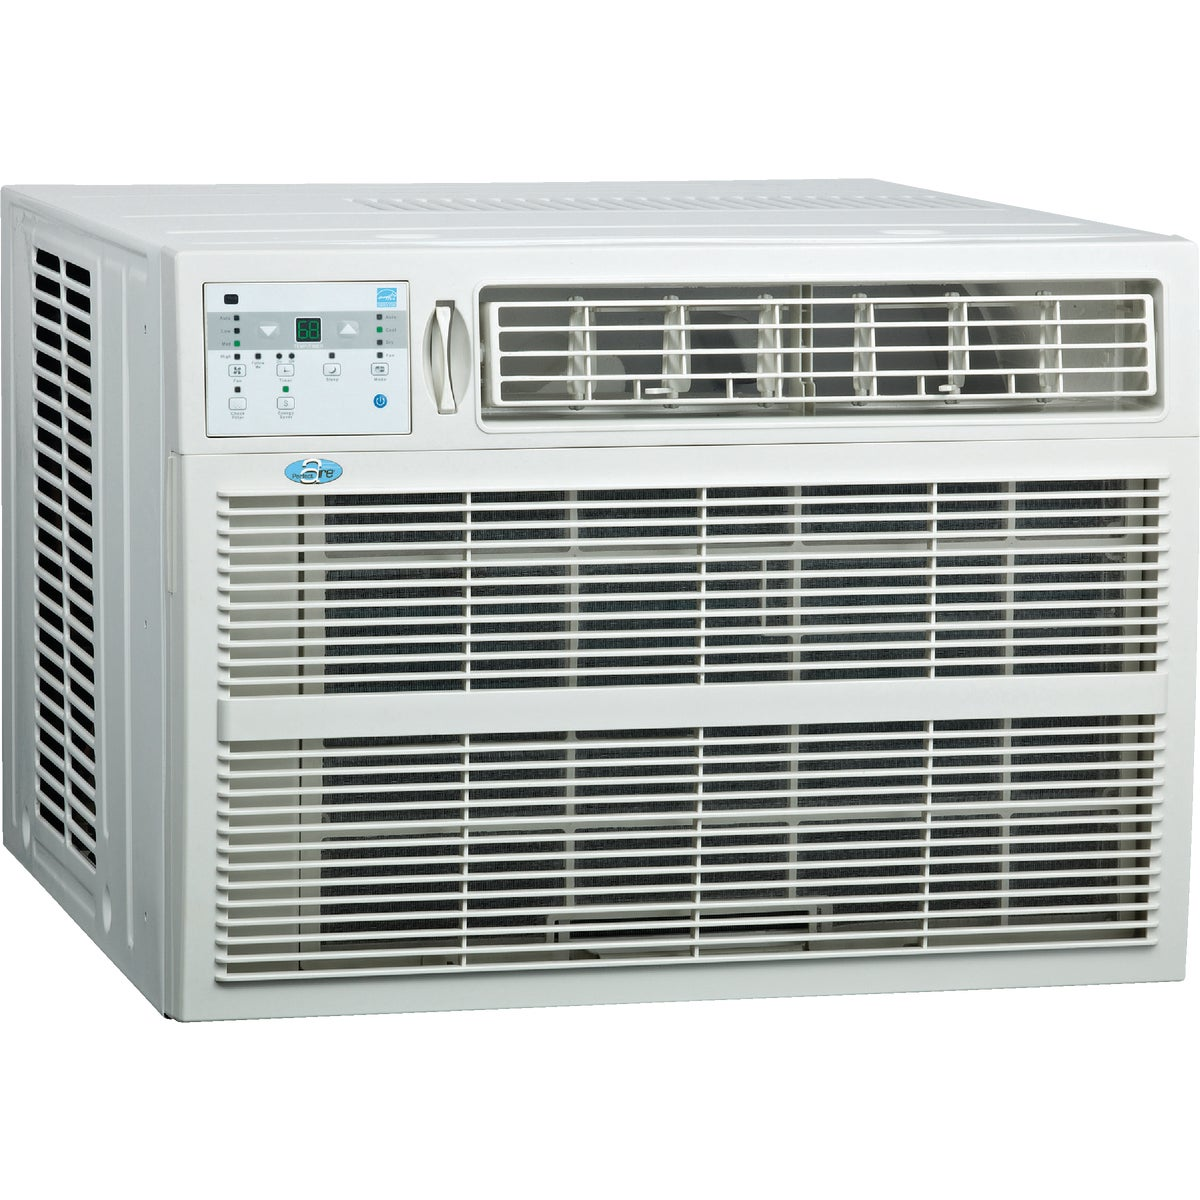 18000BTU AIR CONDITIONER - 2PAC18000 by Perfect Aire Import